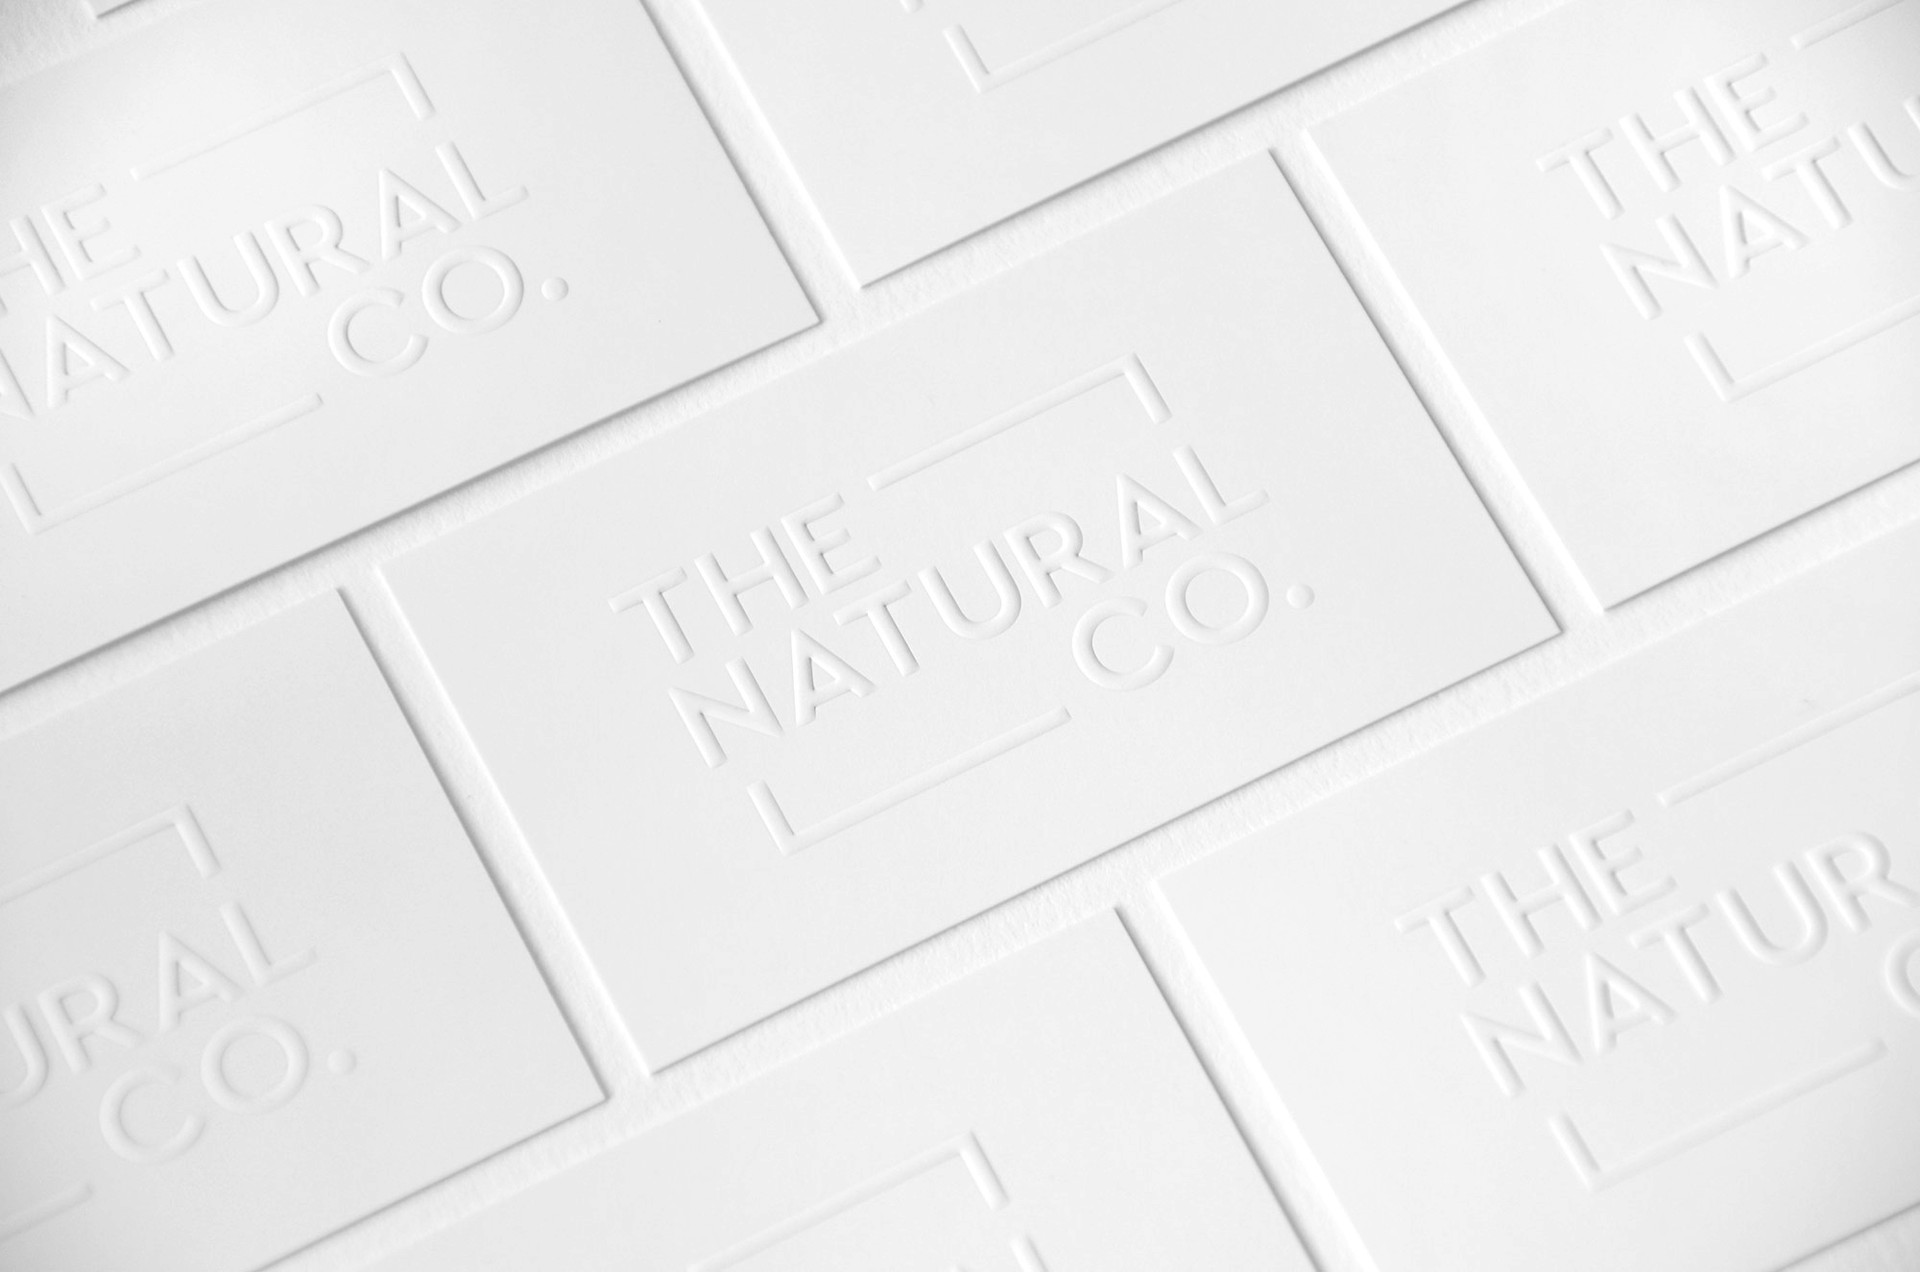 The Natural Co Branding and Business Cards